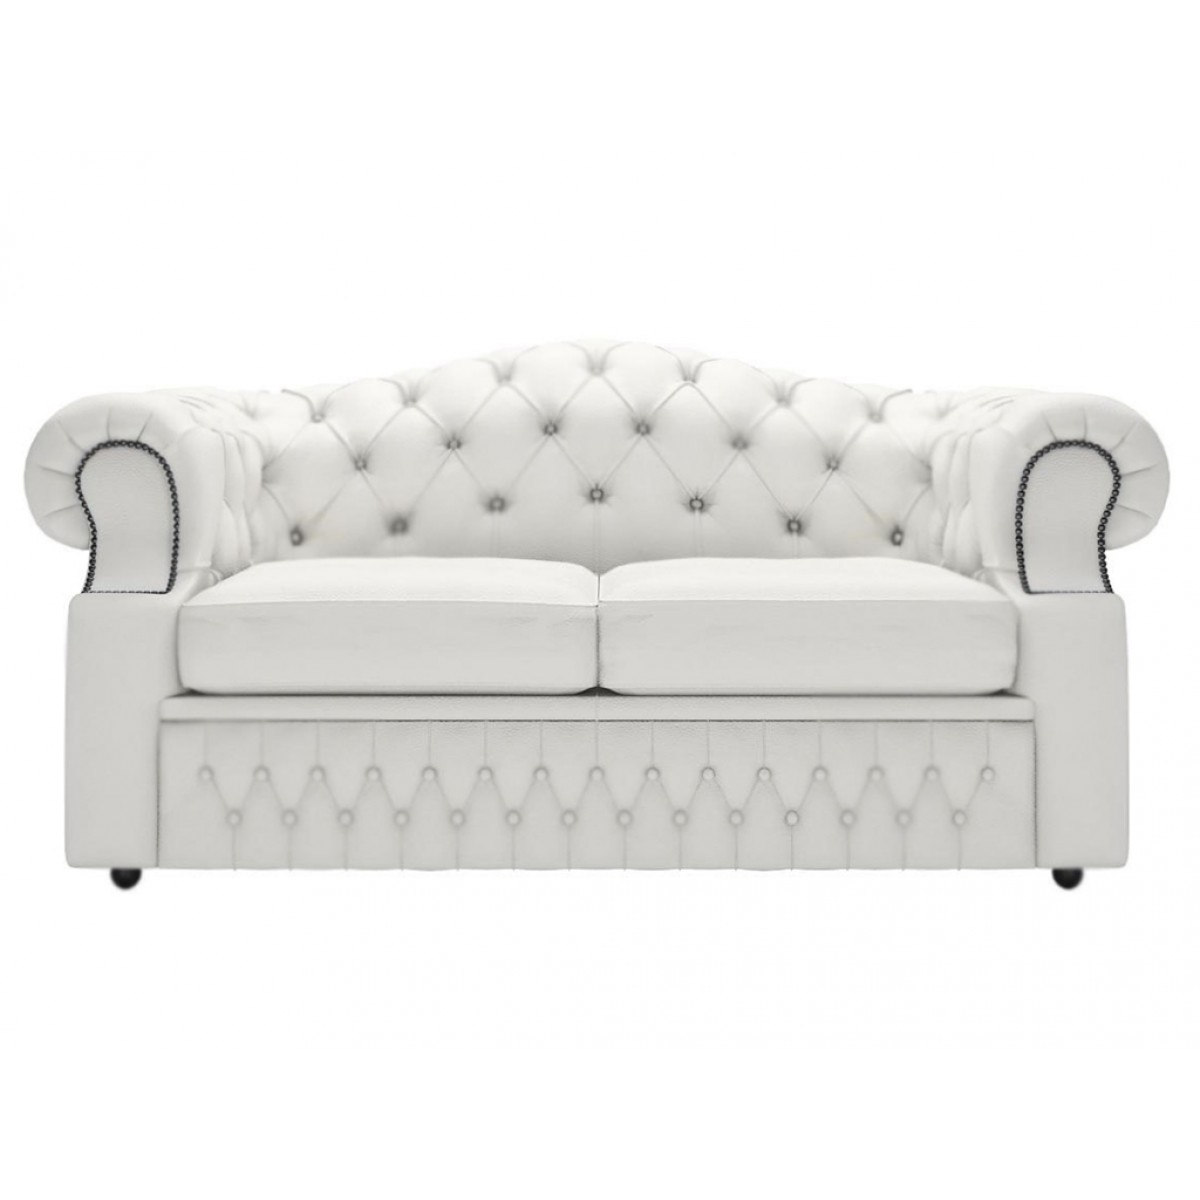 2 seater leather sofas in white best choice to brighten up for 2 seater chaise sofa for sale